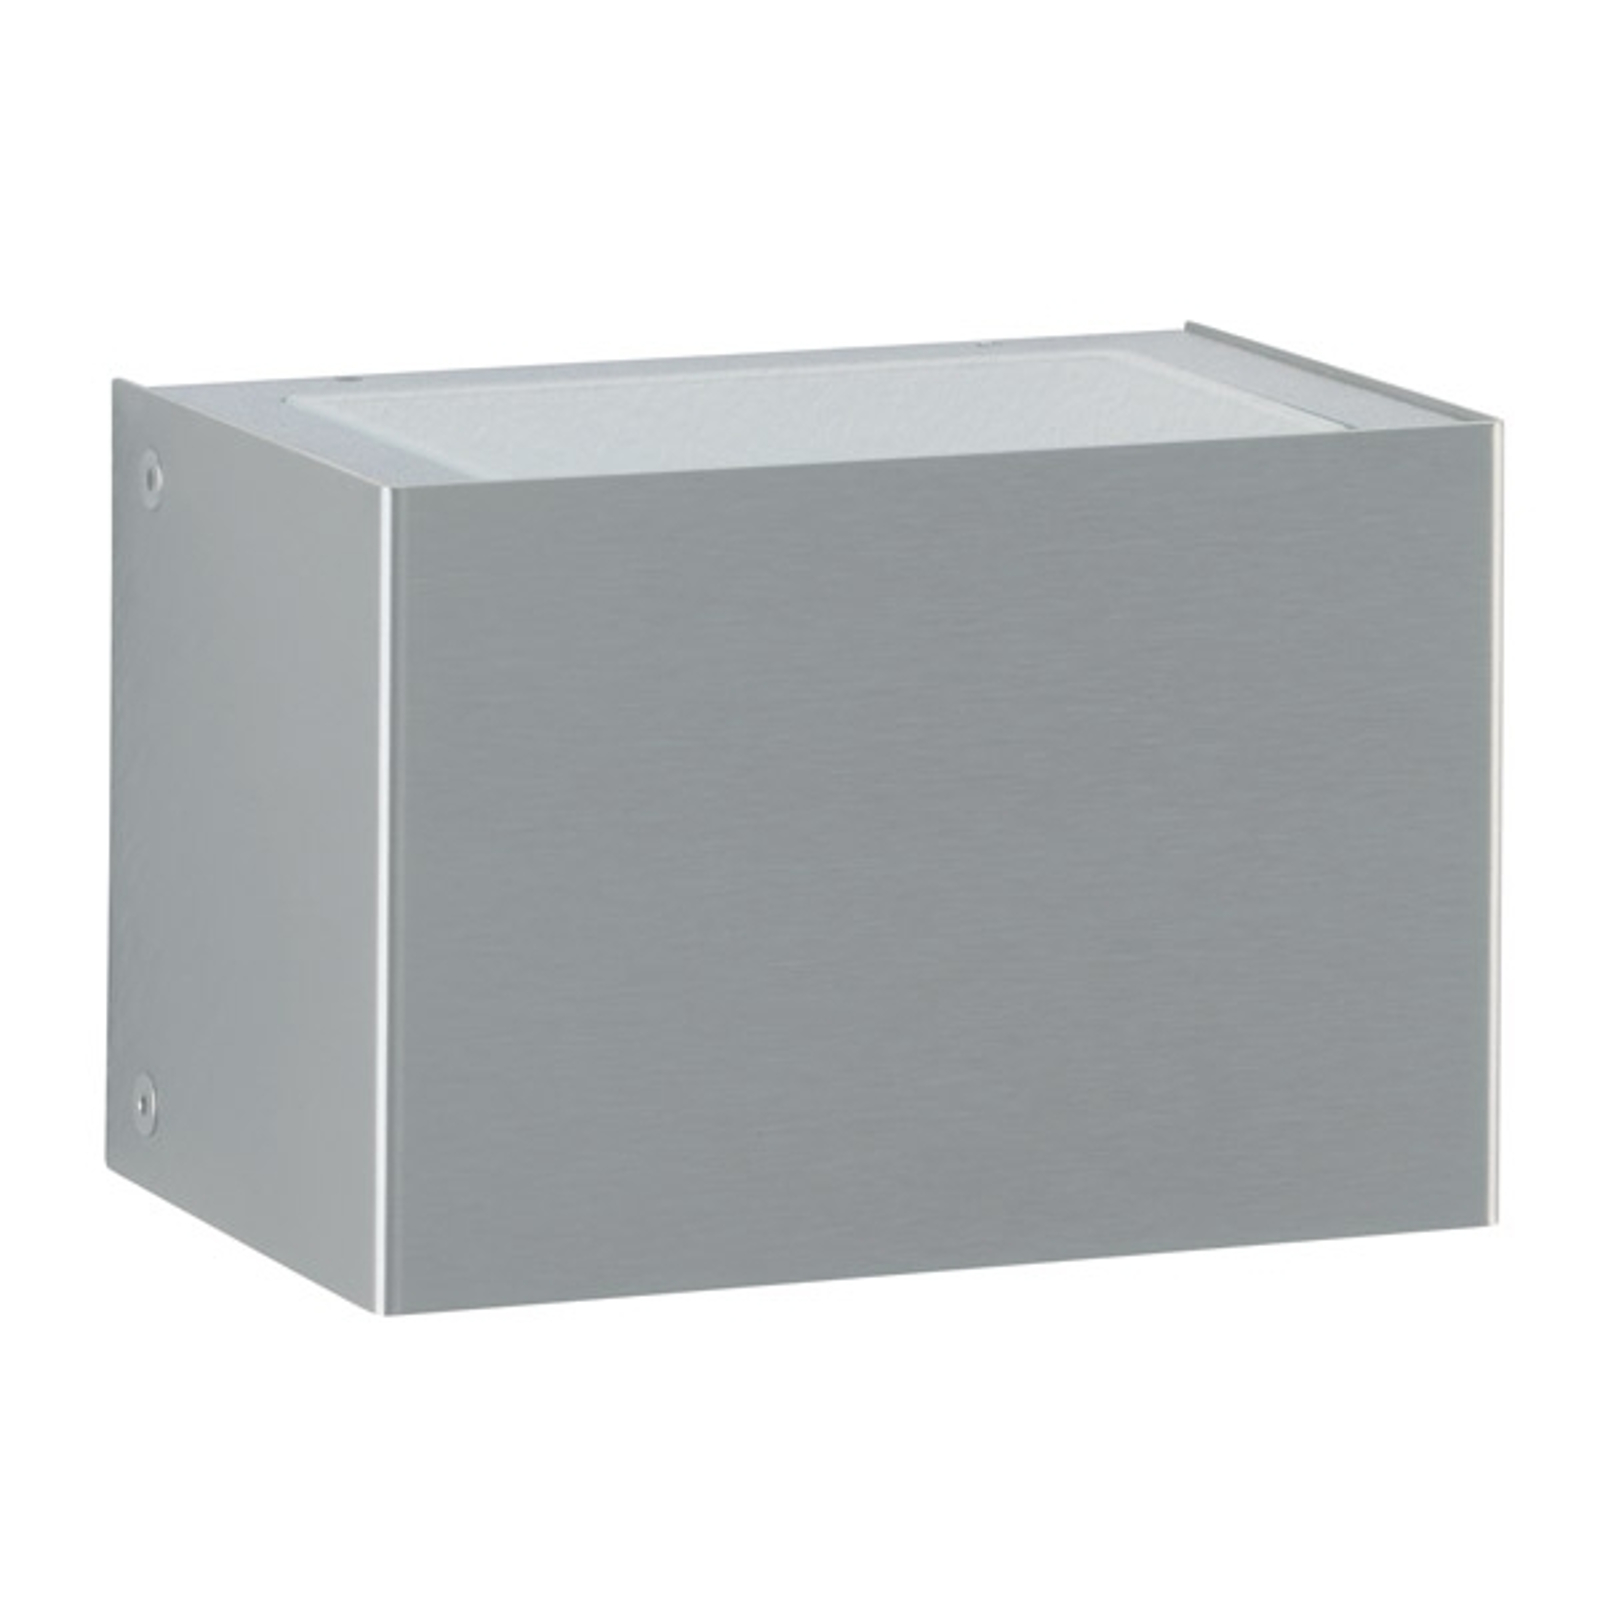 Wandlamp Cube - made in Germany, breedte 15 cm